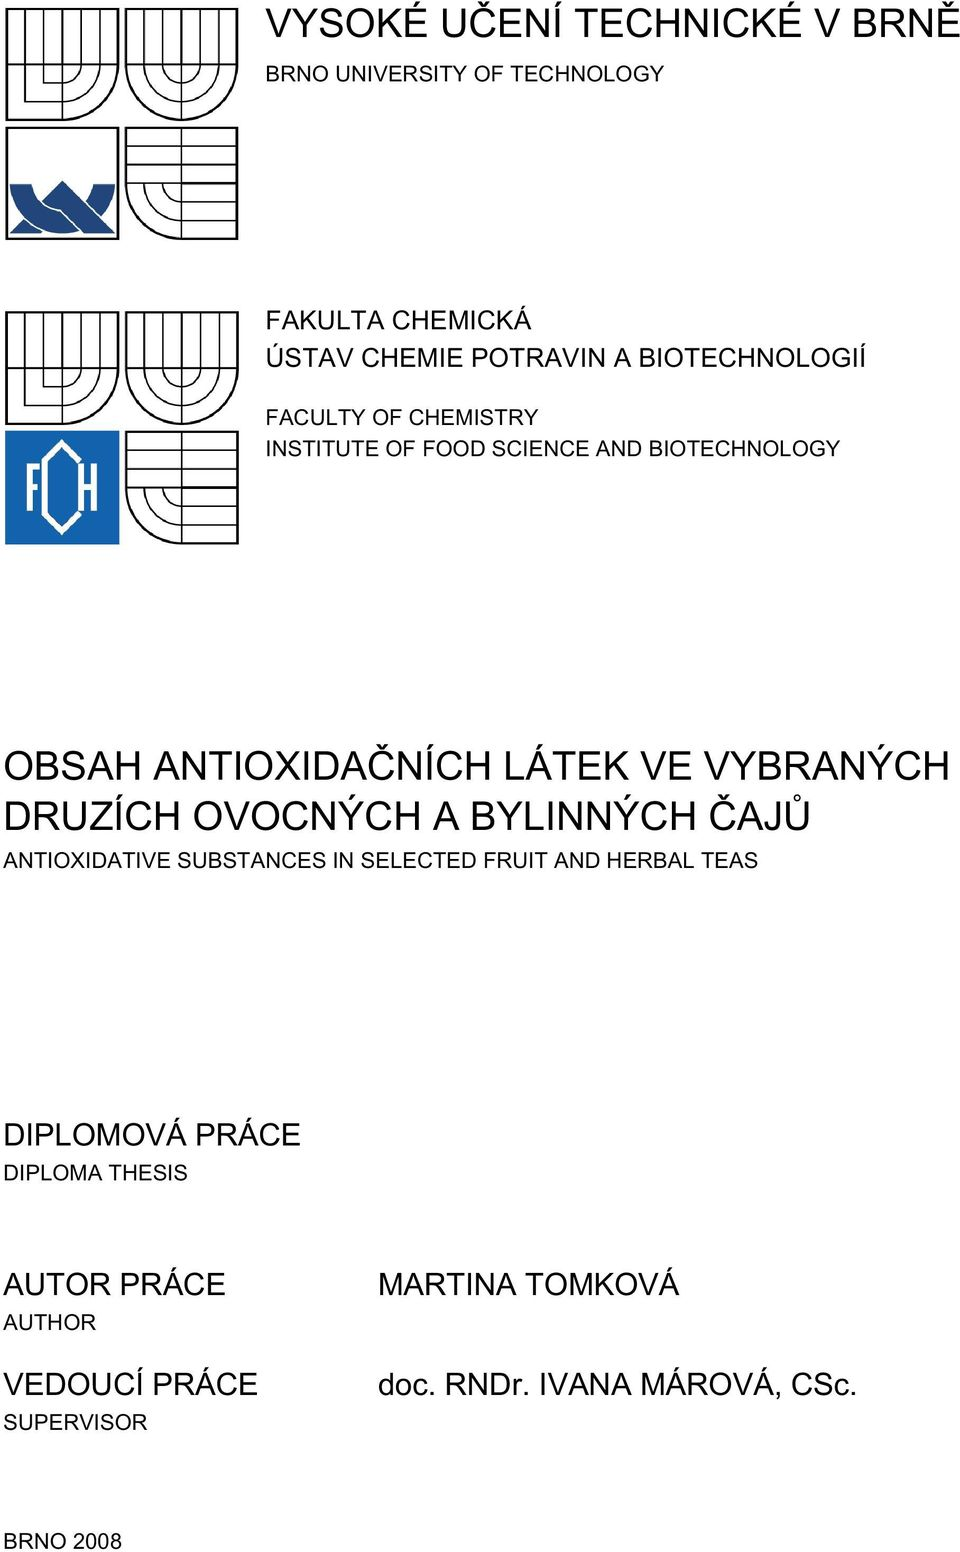 VYBRANÝCH DRUZÍCH OVOCNÝCH A BYLINNÝCH ČAJŮ ANTIOXIDATIVE SUBSTANCES IN SELECTED FRUIT AND HERBAL TEAS